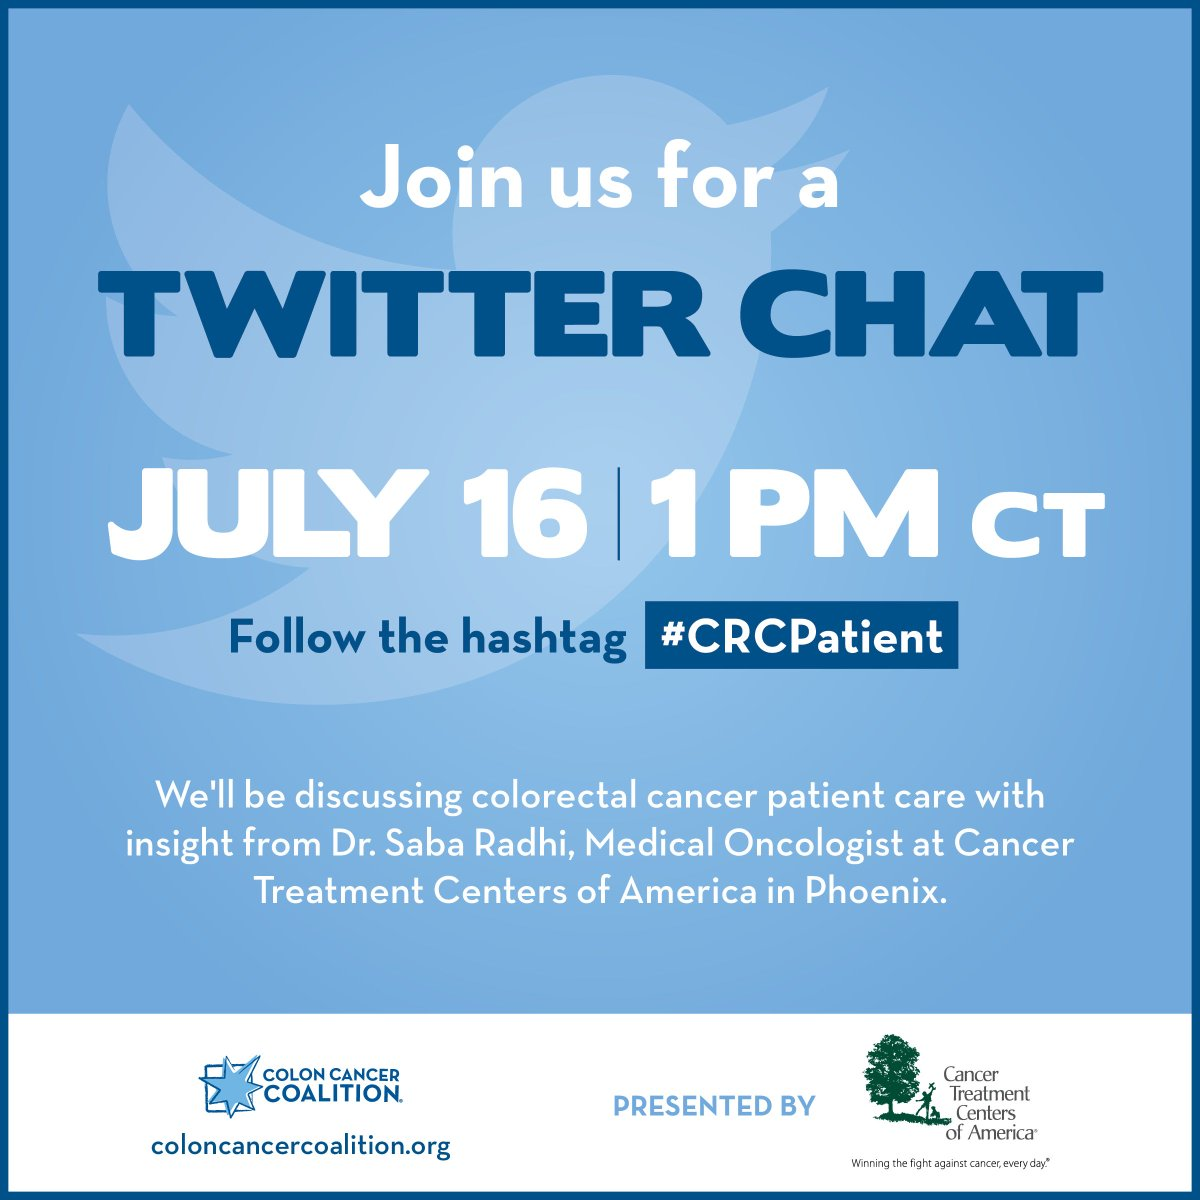 Colon Cancer Coalition On Twitter Join Us For A Crcpatient Twitter Chat July 16 1 P M Ct We Re Discussing Fertility Preservation Tumor Markers Genetic Testing Clinical Trials And Recurrence With Dr Saba